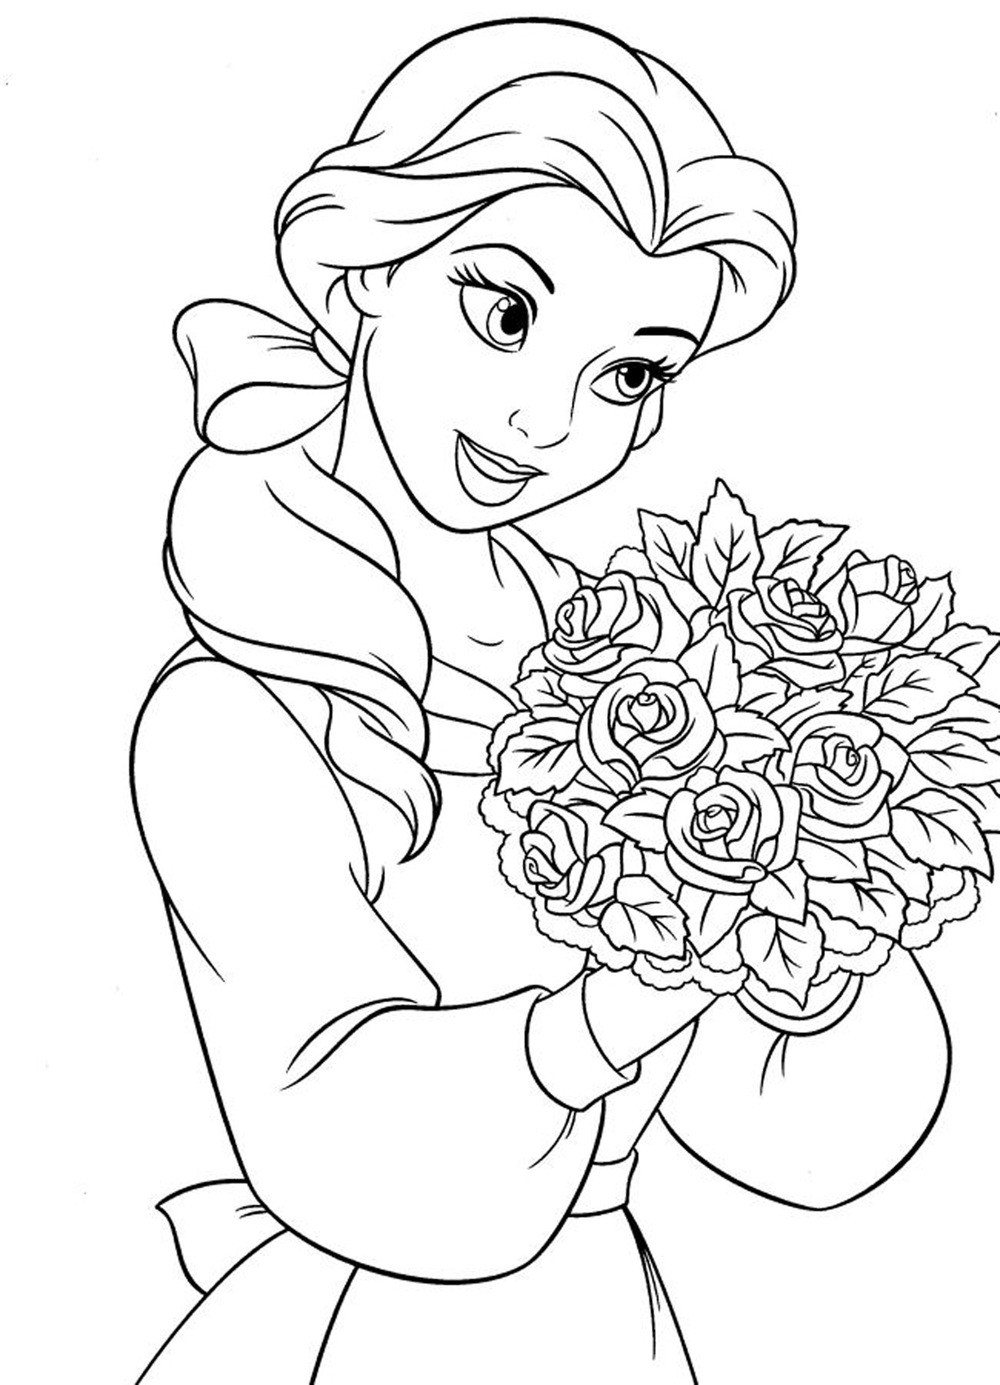 Best ideas about Disney Princess Coloring Pages For Kids . Save or Pin Free Printable Disney Princess Coloring Pages For Kids Now.